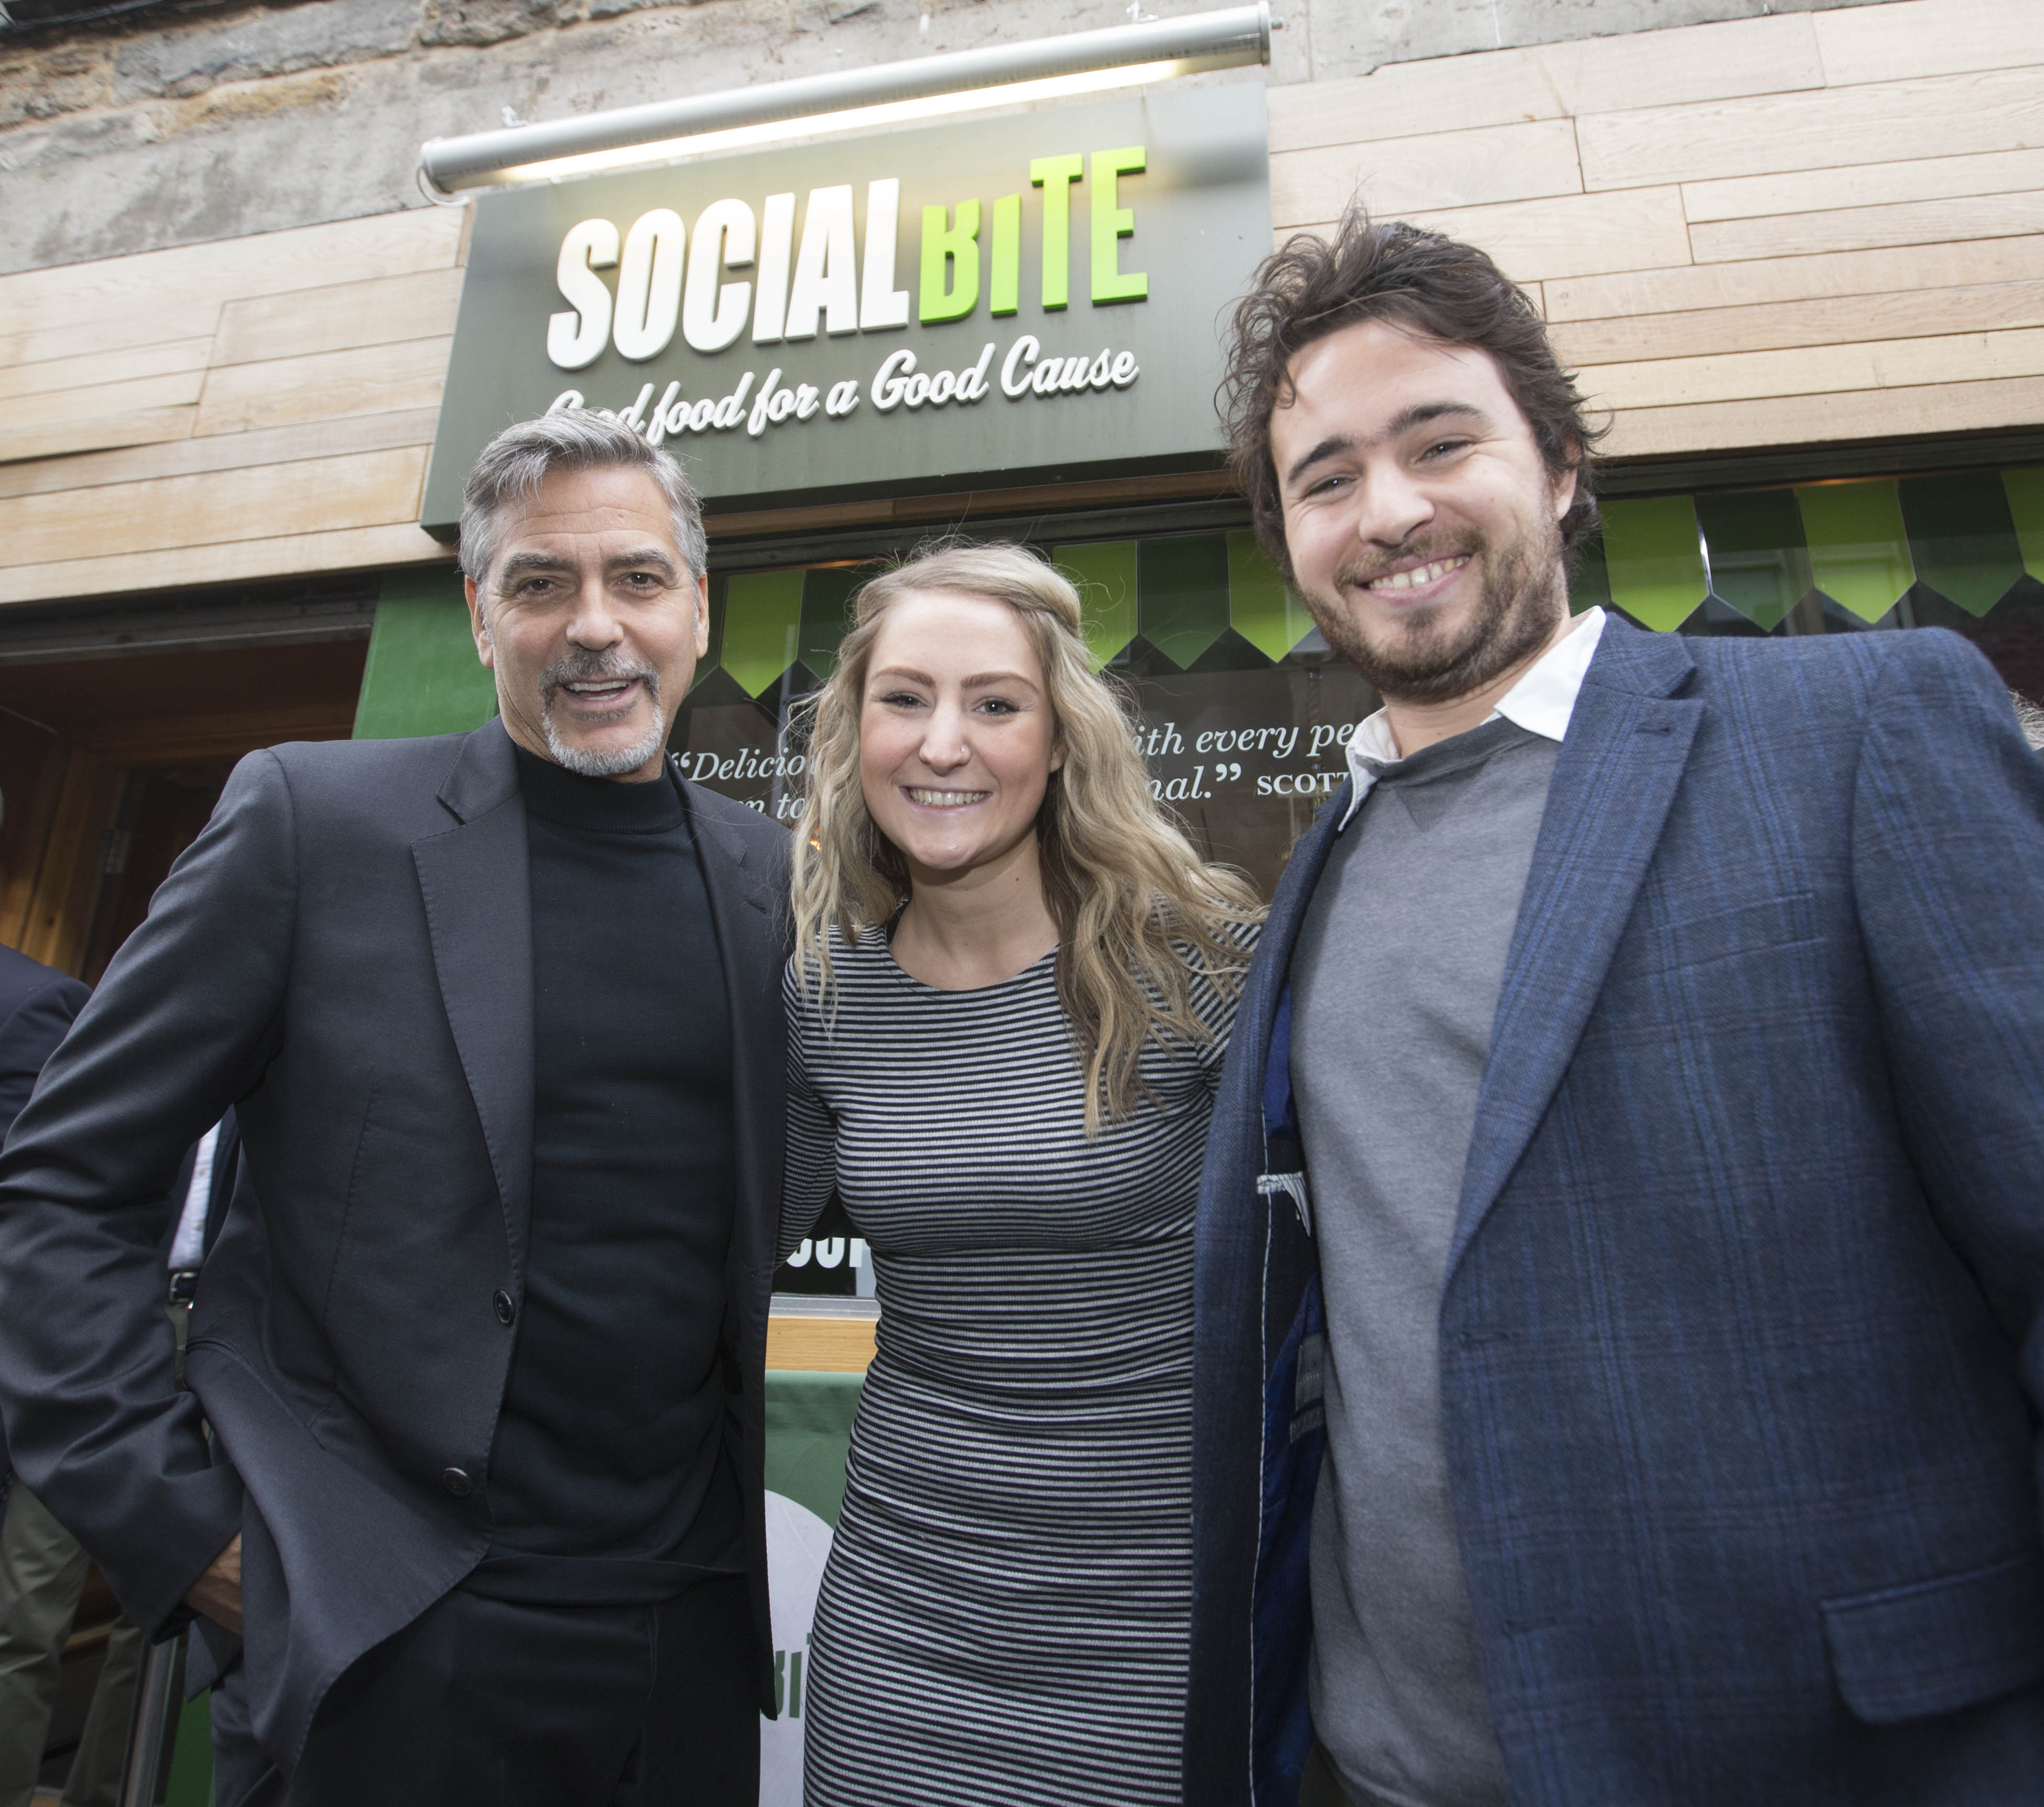 From left: George Clooney, and Social Bite co-founders Alice Thompson and Josh Littlejohn in Edinburgh, Scotland on Nov. 12, 2015.